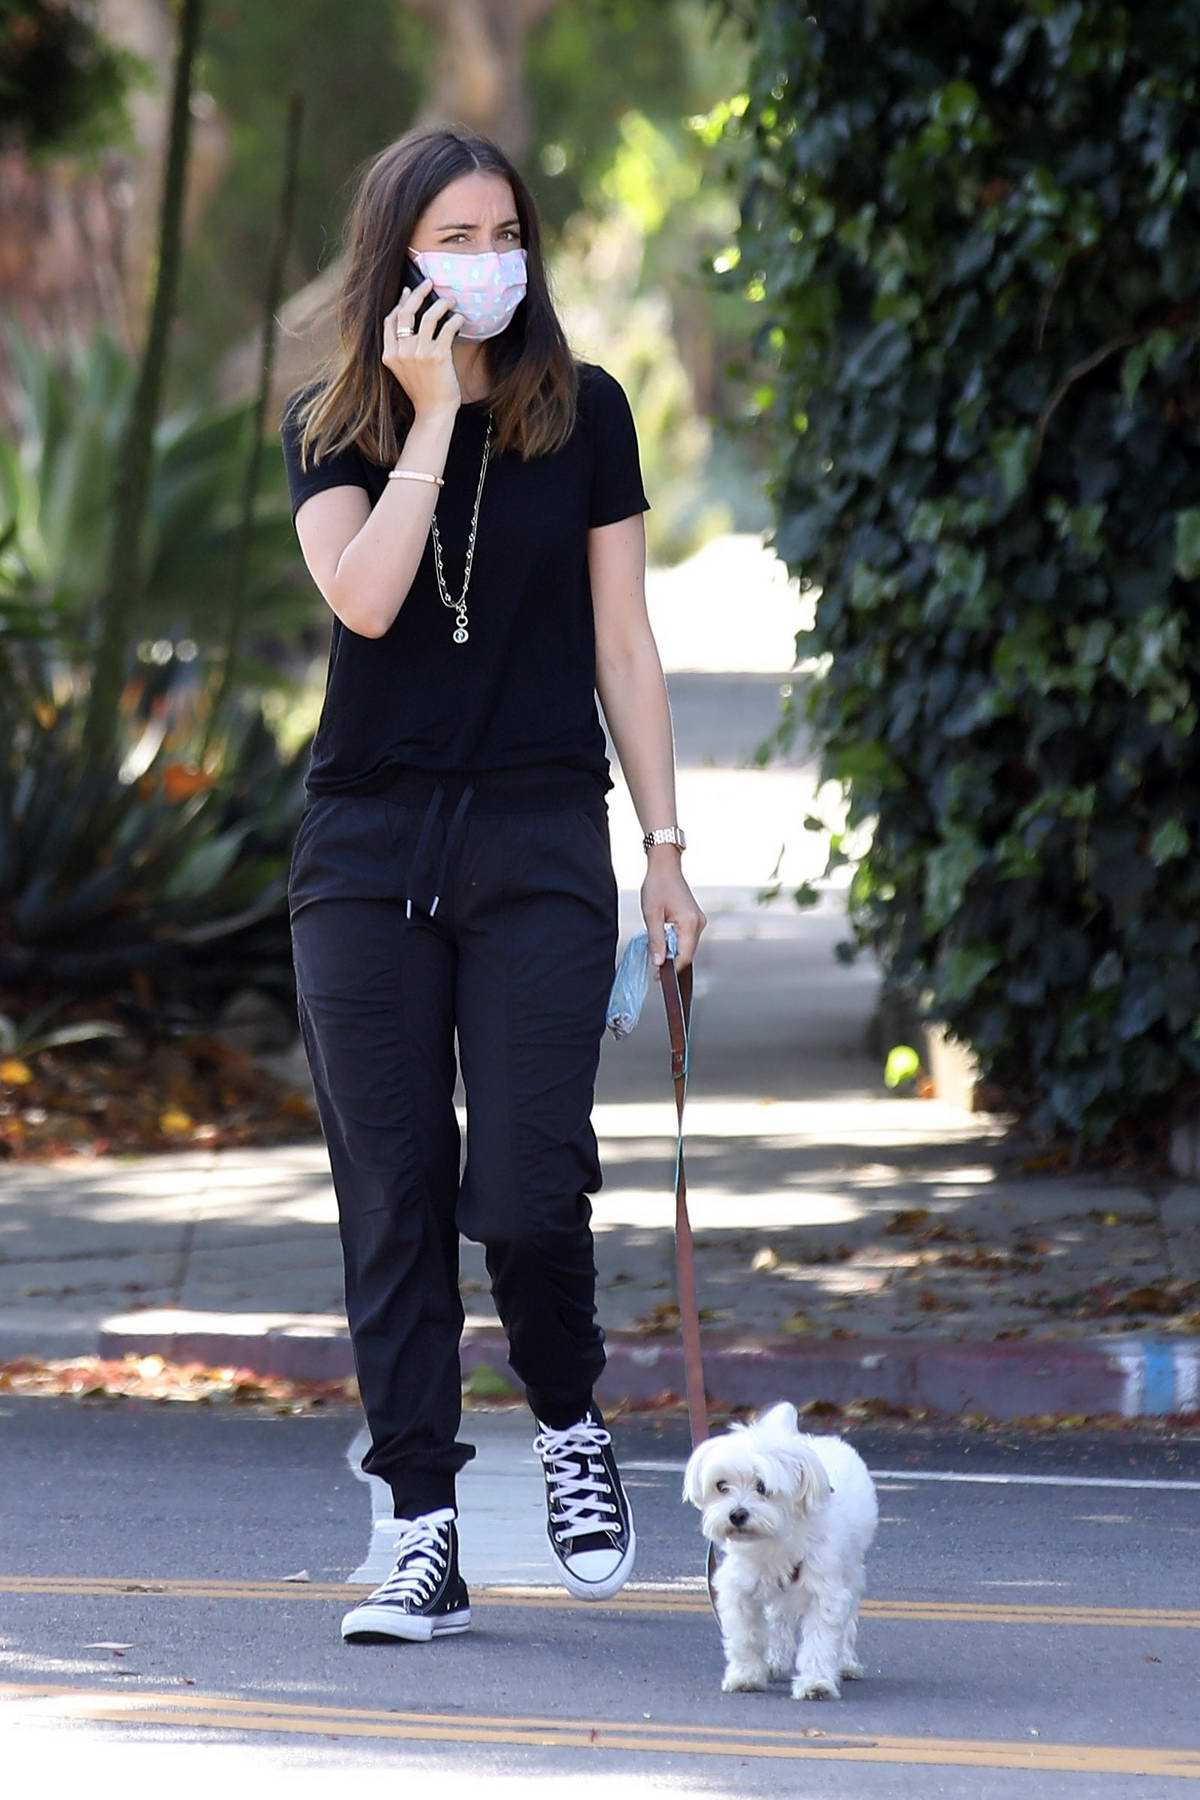 Ana de Armas dresses in all-black while walking her dog early in the morning in Venice, California